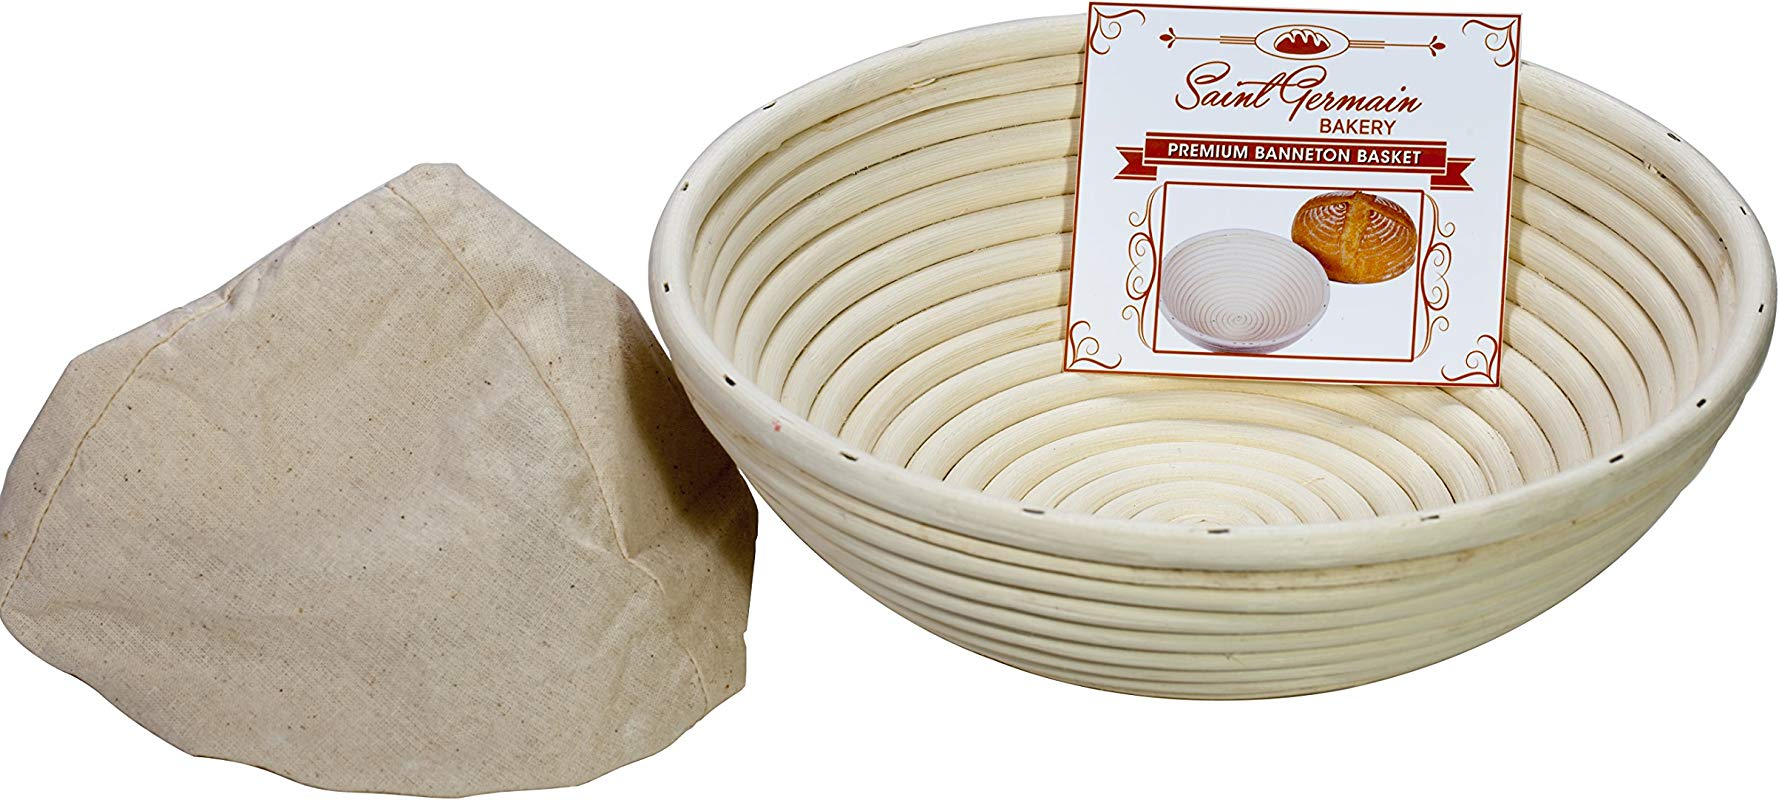 10 Inch Premium Round Bread Banneton Basket With Liner Perfect Brotform Proofing Basket For Making Beautiful Bread